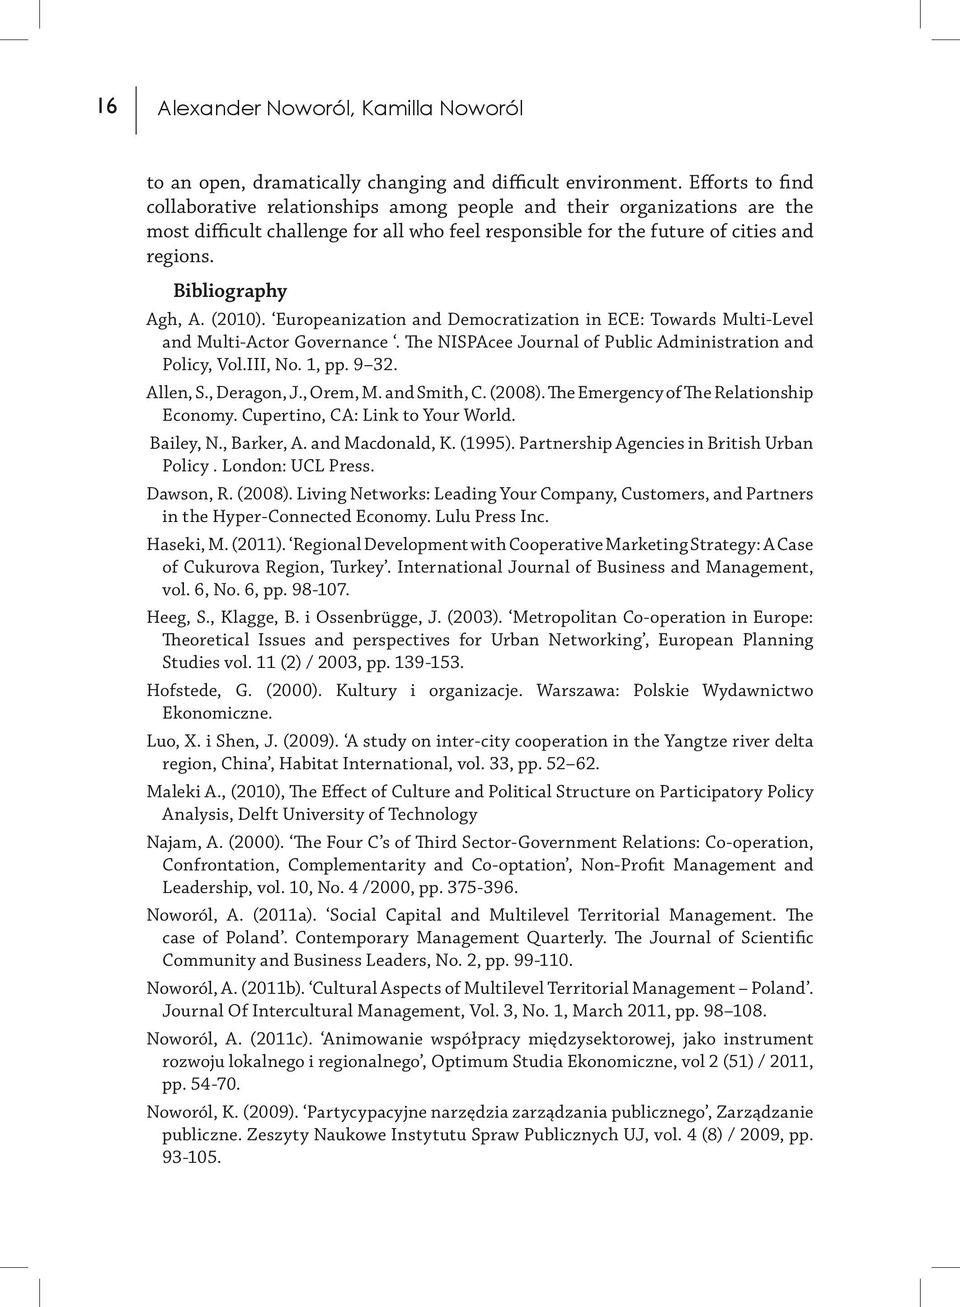 Bibliography Agh, A. (2010). Europeanization and Democratization in ECE: Towards Multi-Level and Multi-Actor Governance. The NISPAcee Journal of Public Administration and Policy, Vol.III, No. 1, pp.